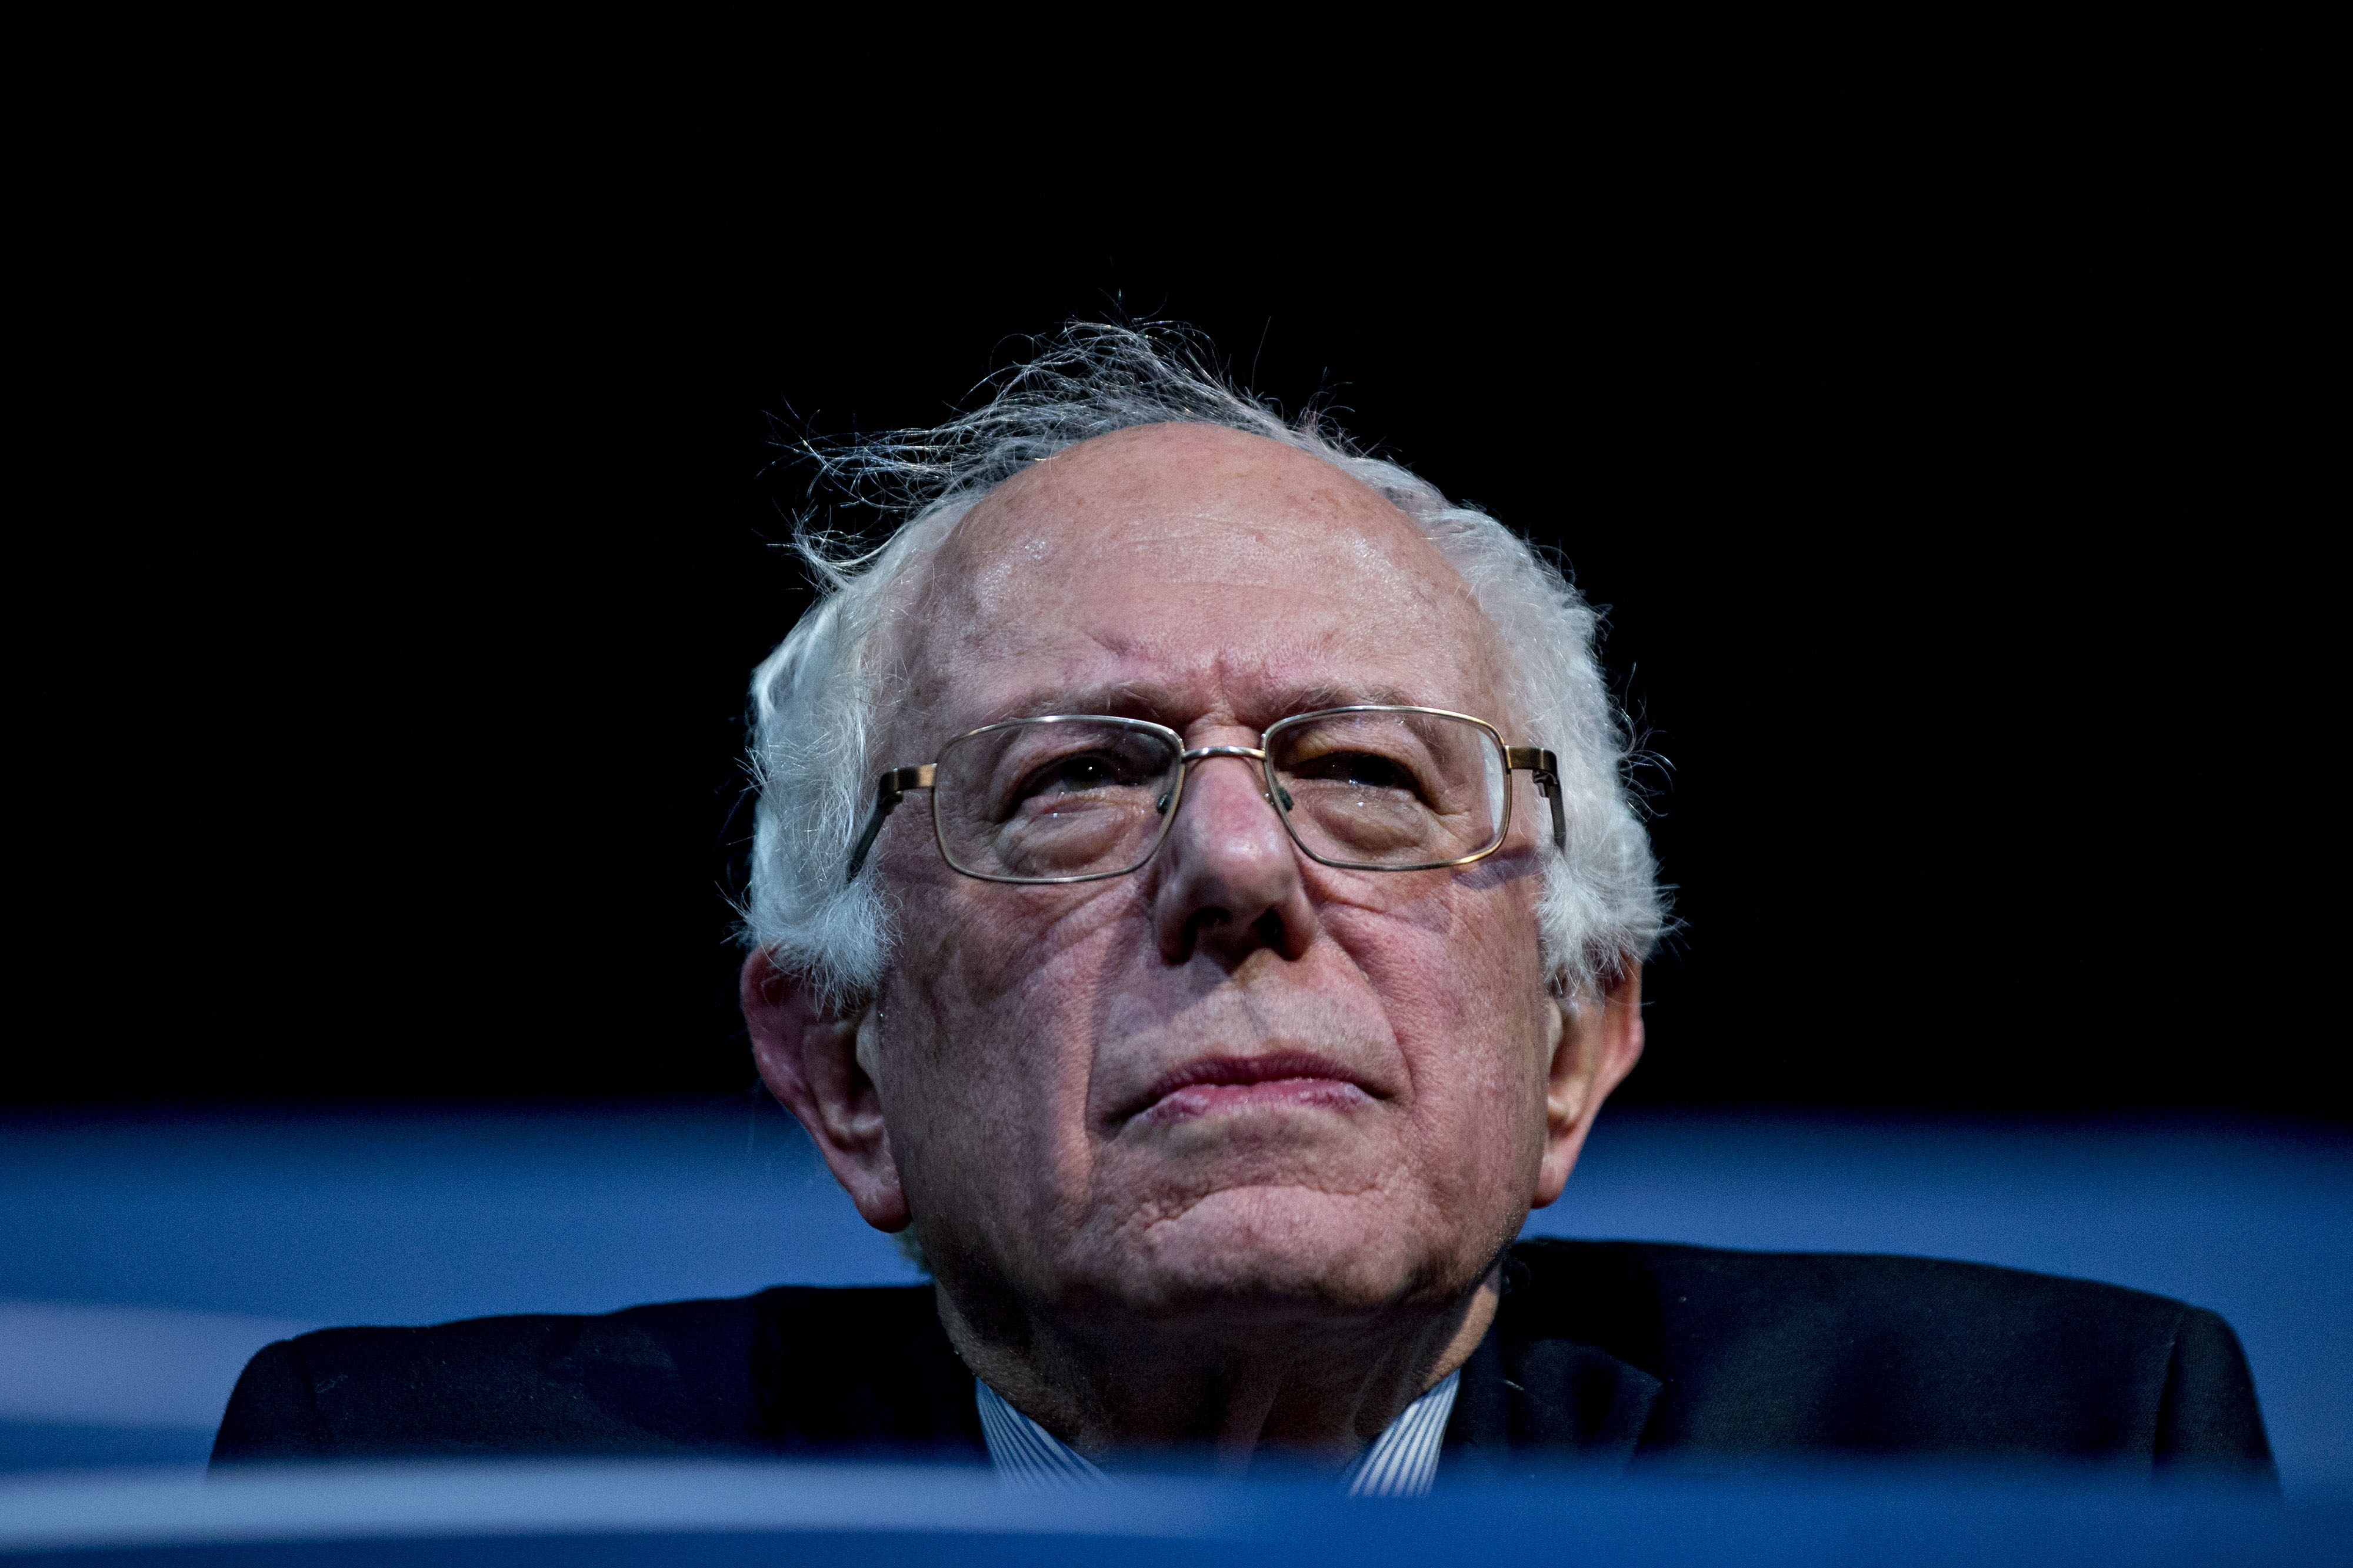 Bernie Sanders during a campaign concert and rally in Henderson, Nevada on Feb. 19, 2016.